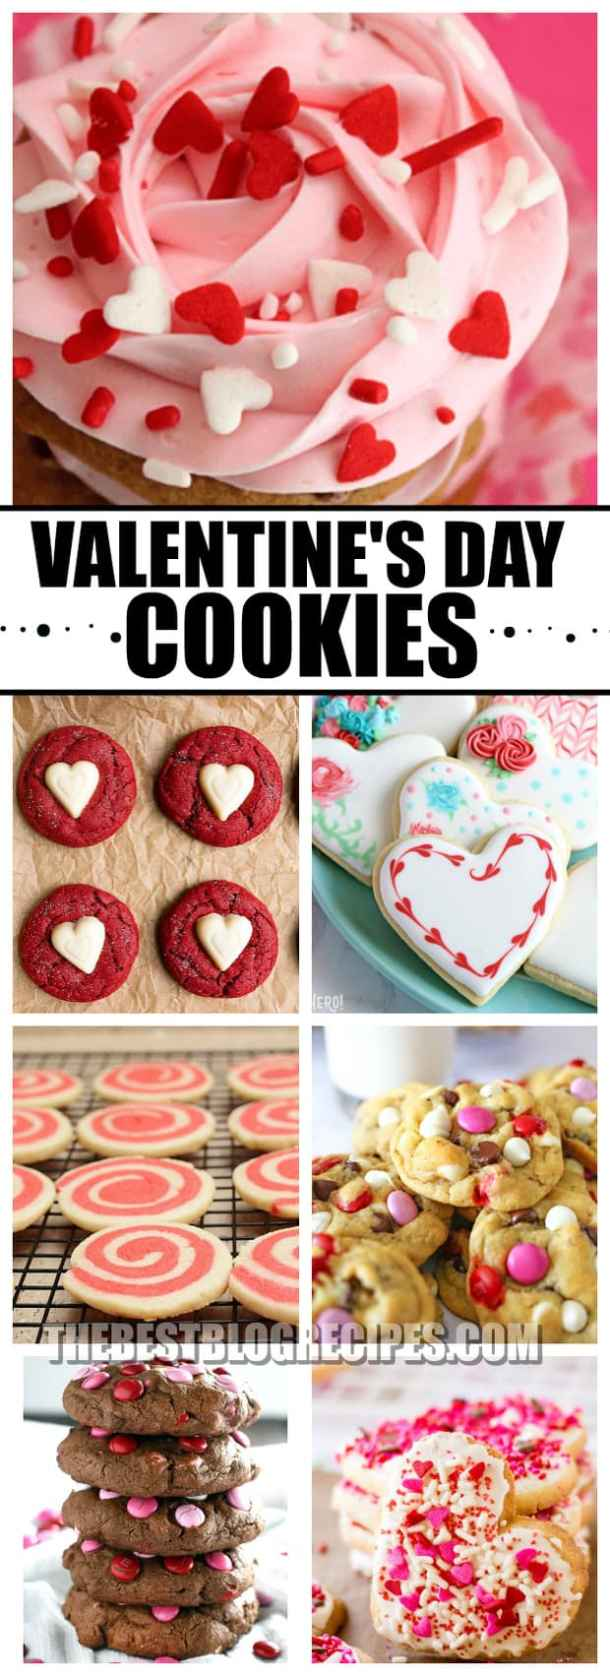 The Best Valentine's Day Cookies